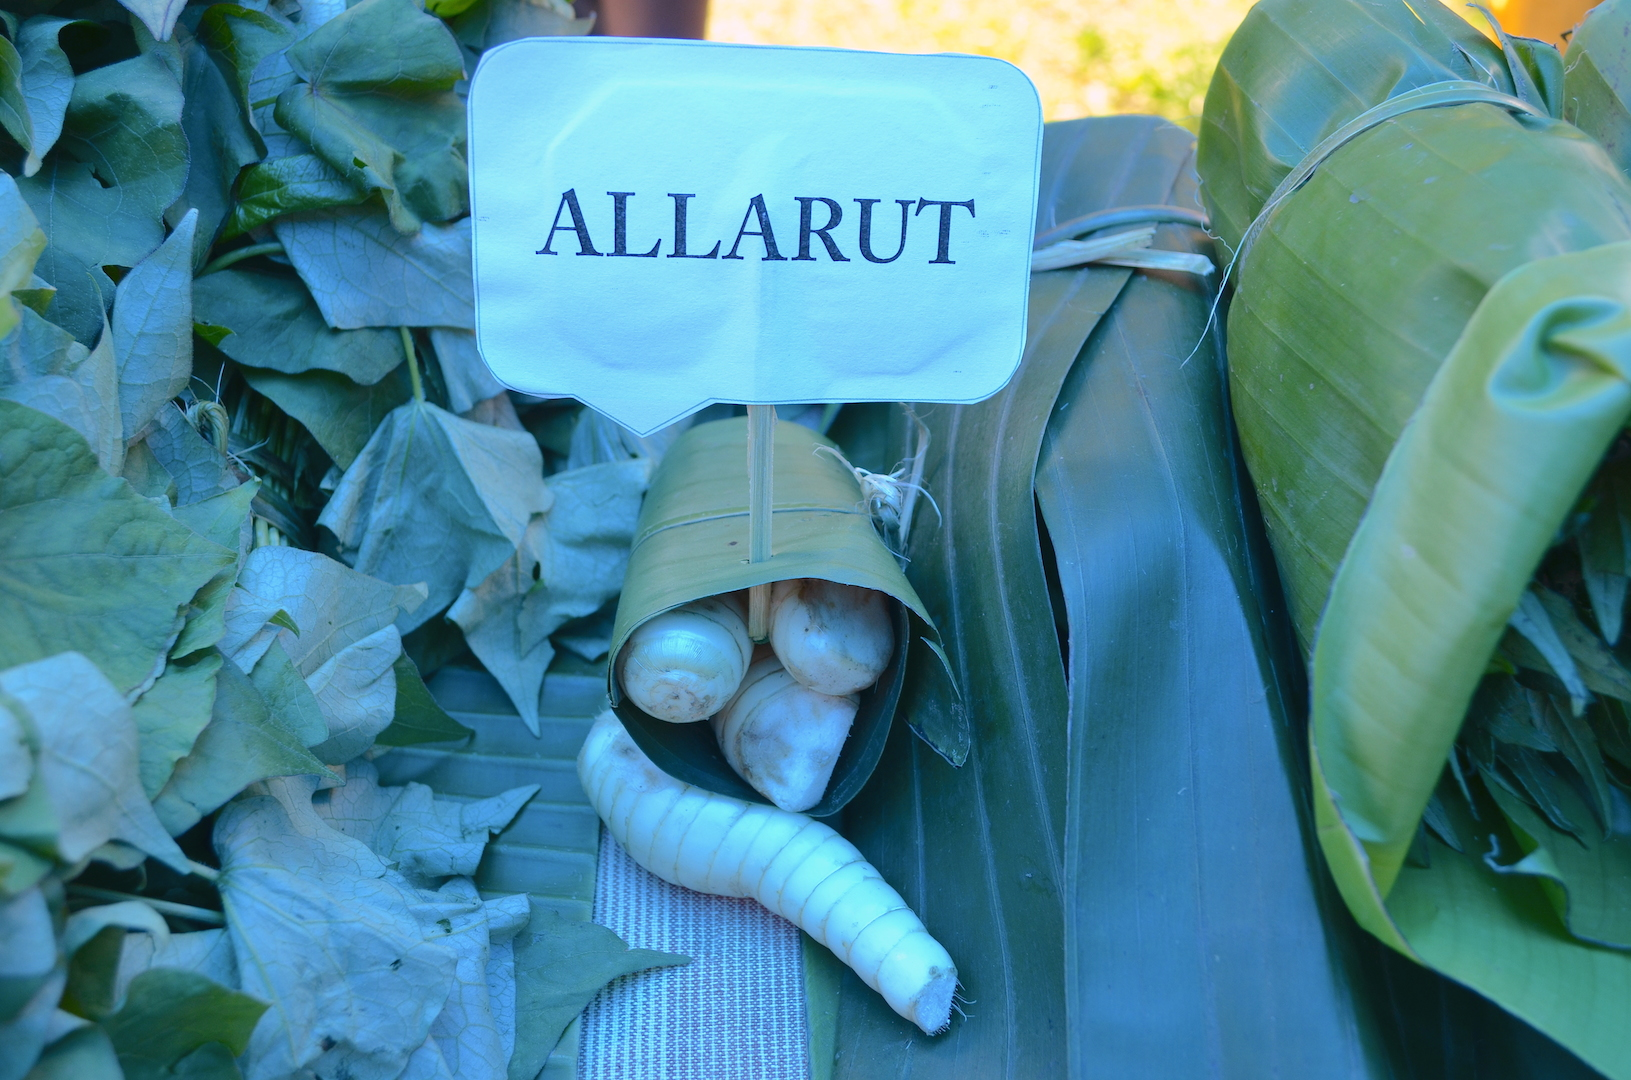 Allarut sold out within the first hour